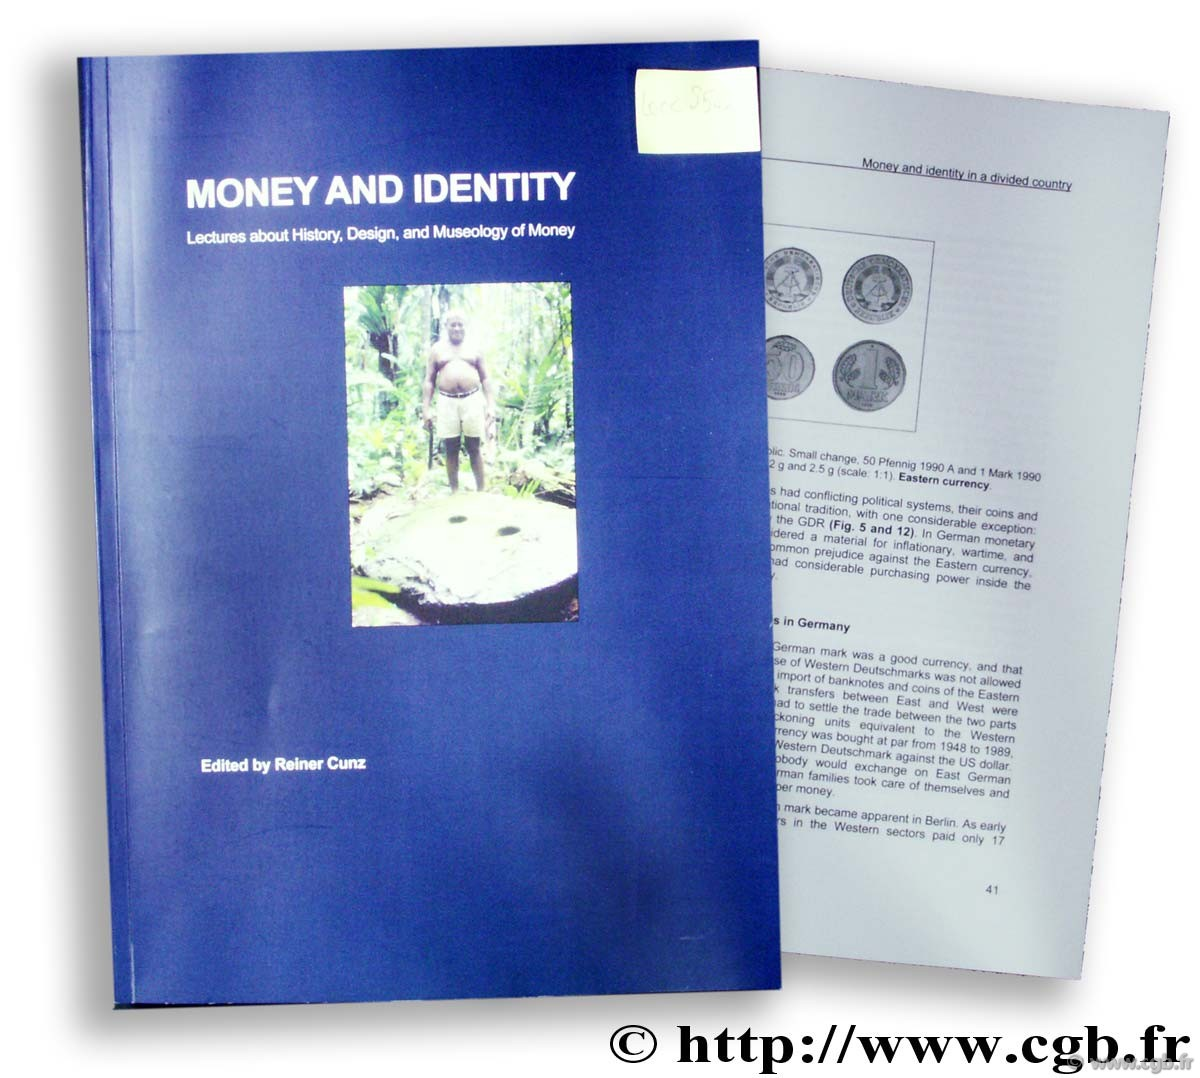 Money and Identity. Lectures about History, Design and Museology of Money